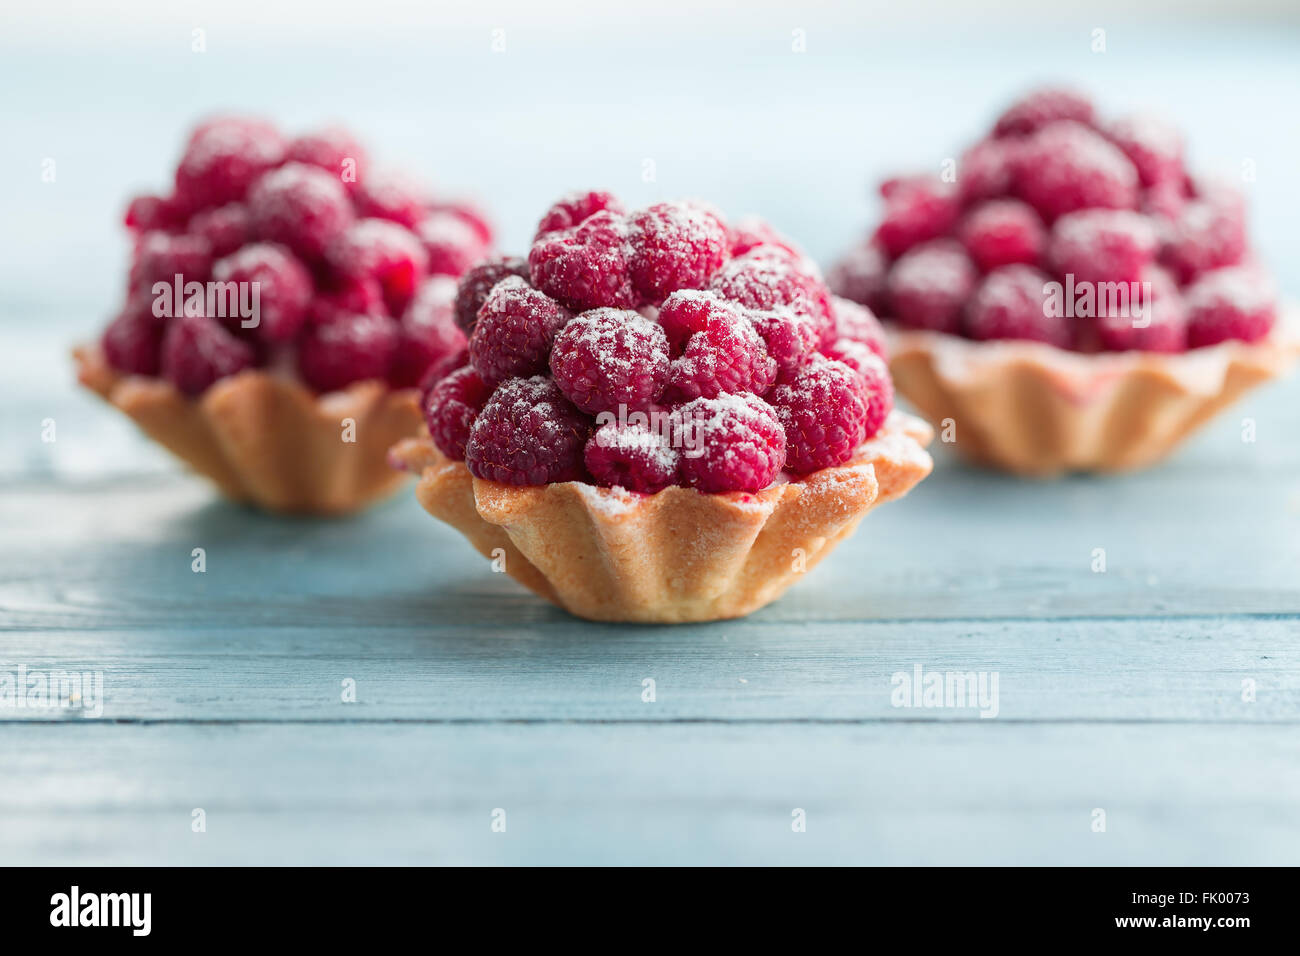 Raspberry tartlets with cream filling and dusted with icing sugar - Stock Image